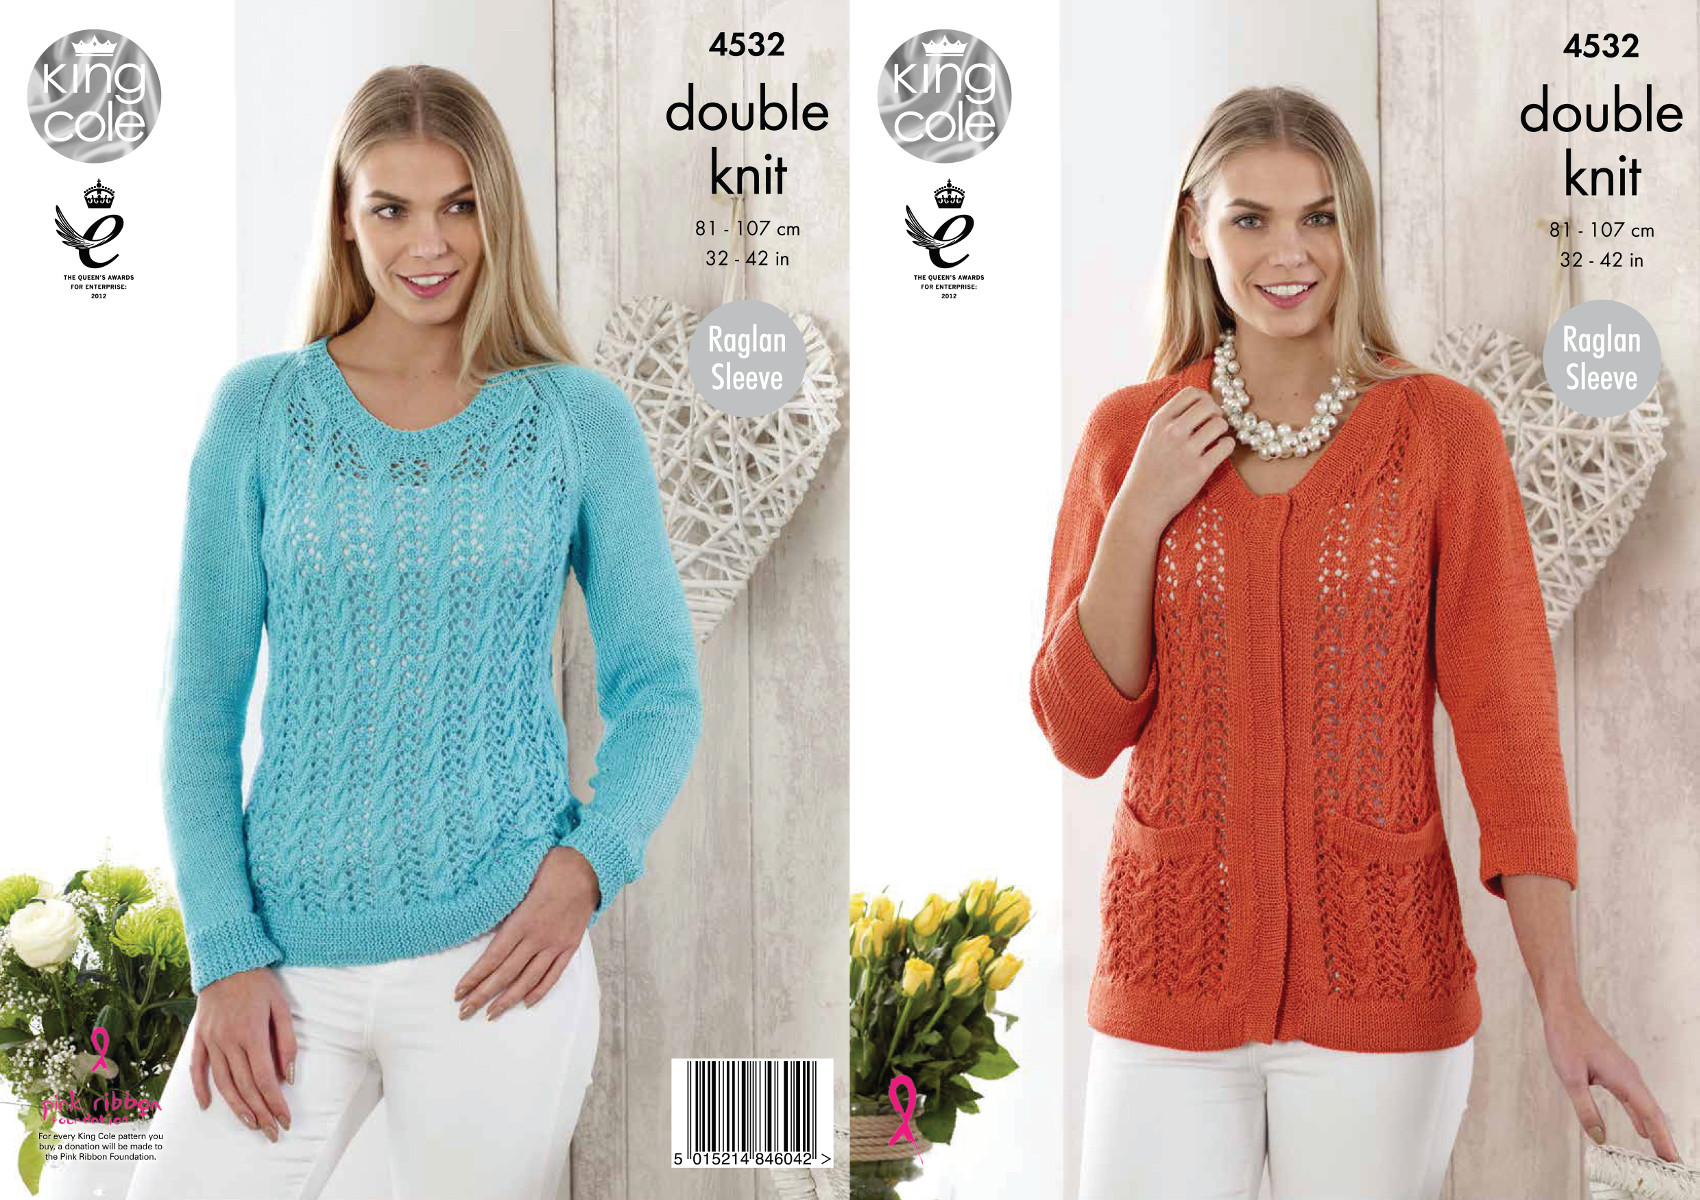 0a33c02c9486 King Cole Womens Double Knitting Pattern Lace Sweater   Cardigan ...